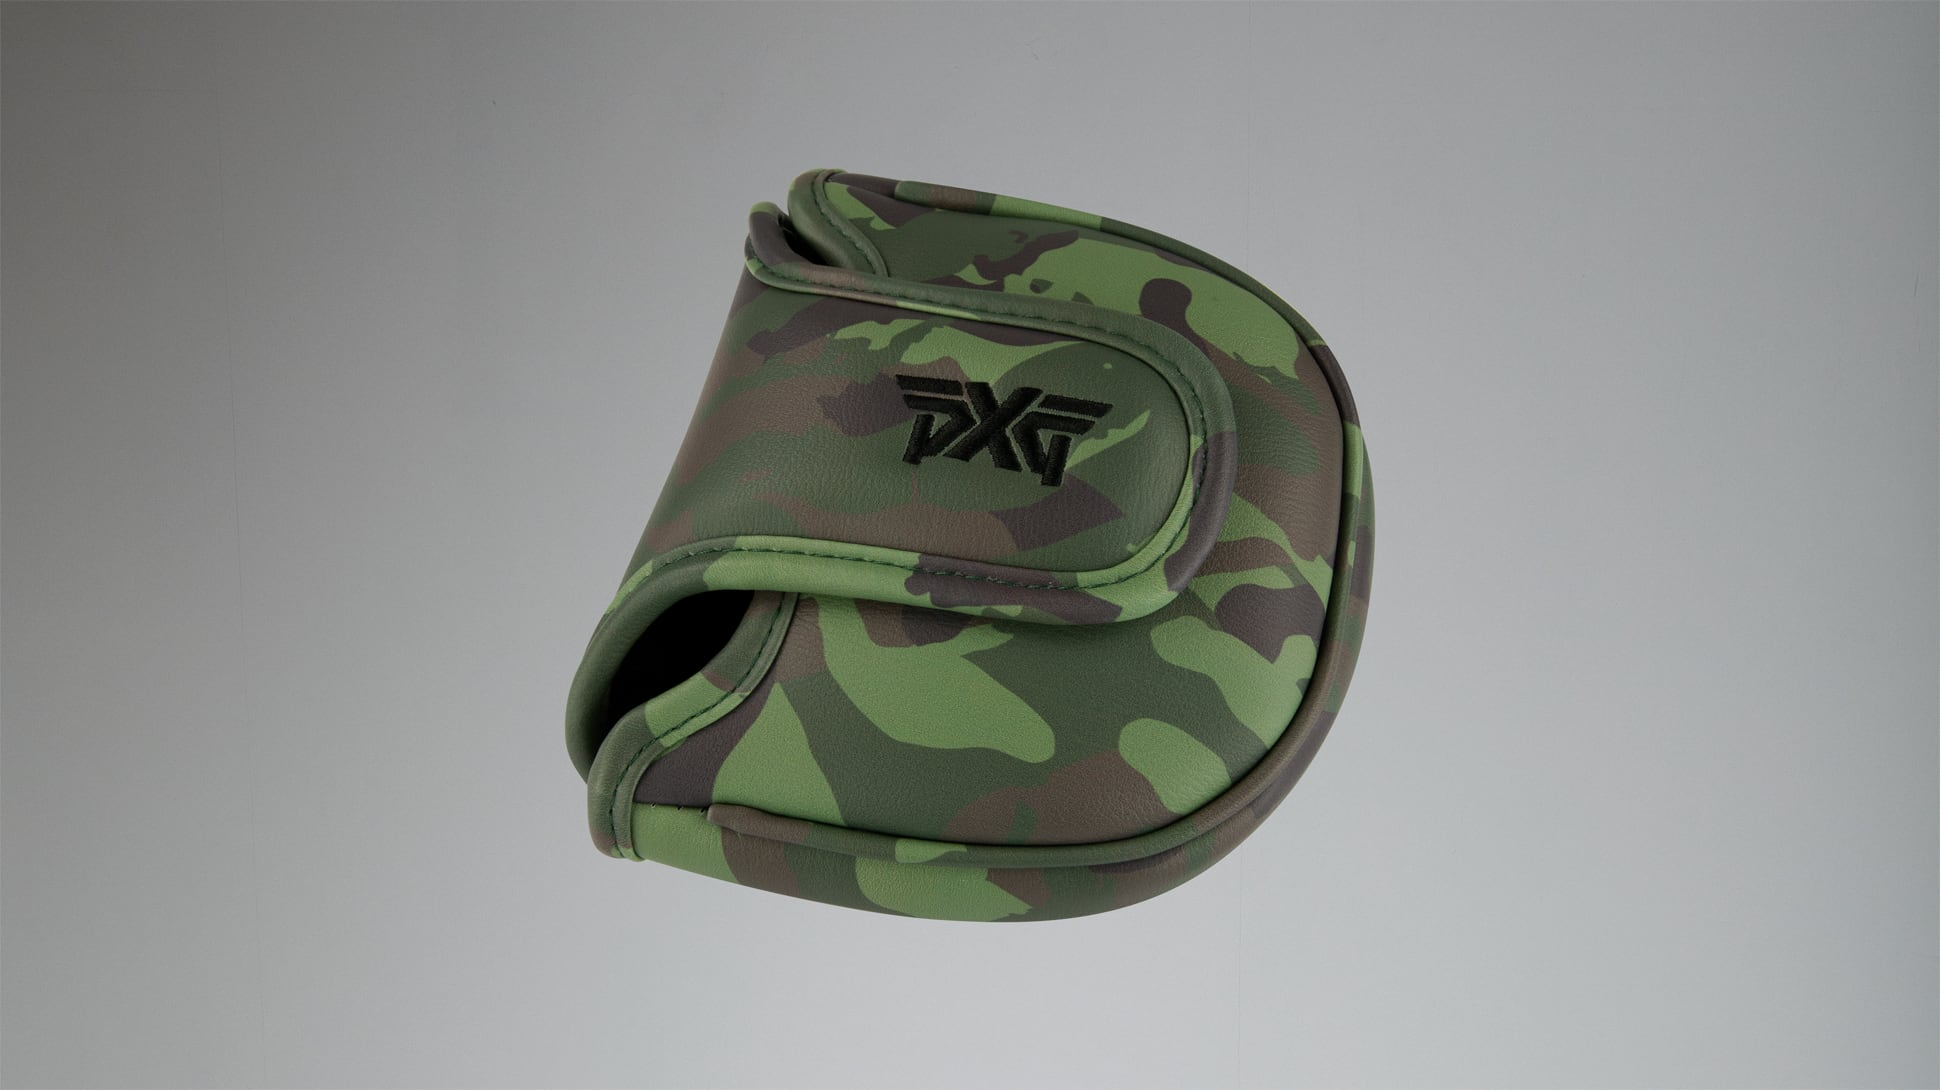 Jungle Camo Mallet Putter Headcover Image 2